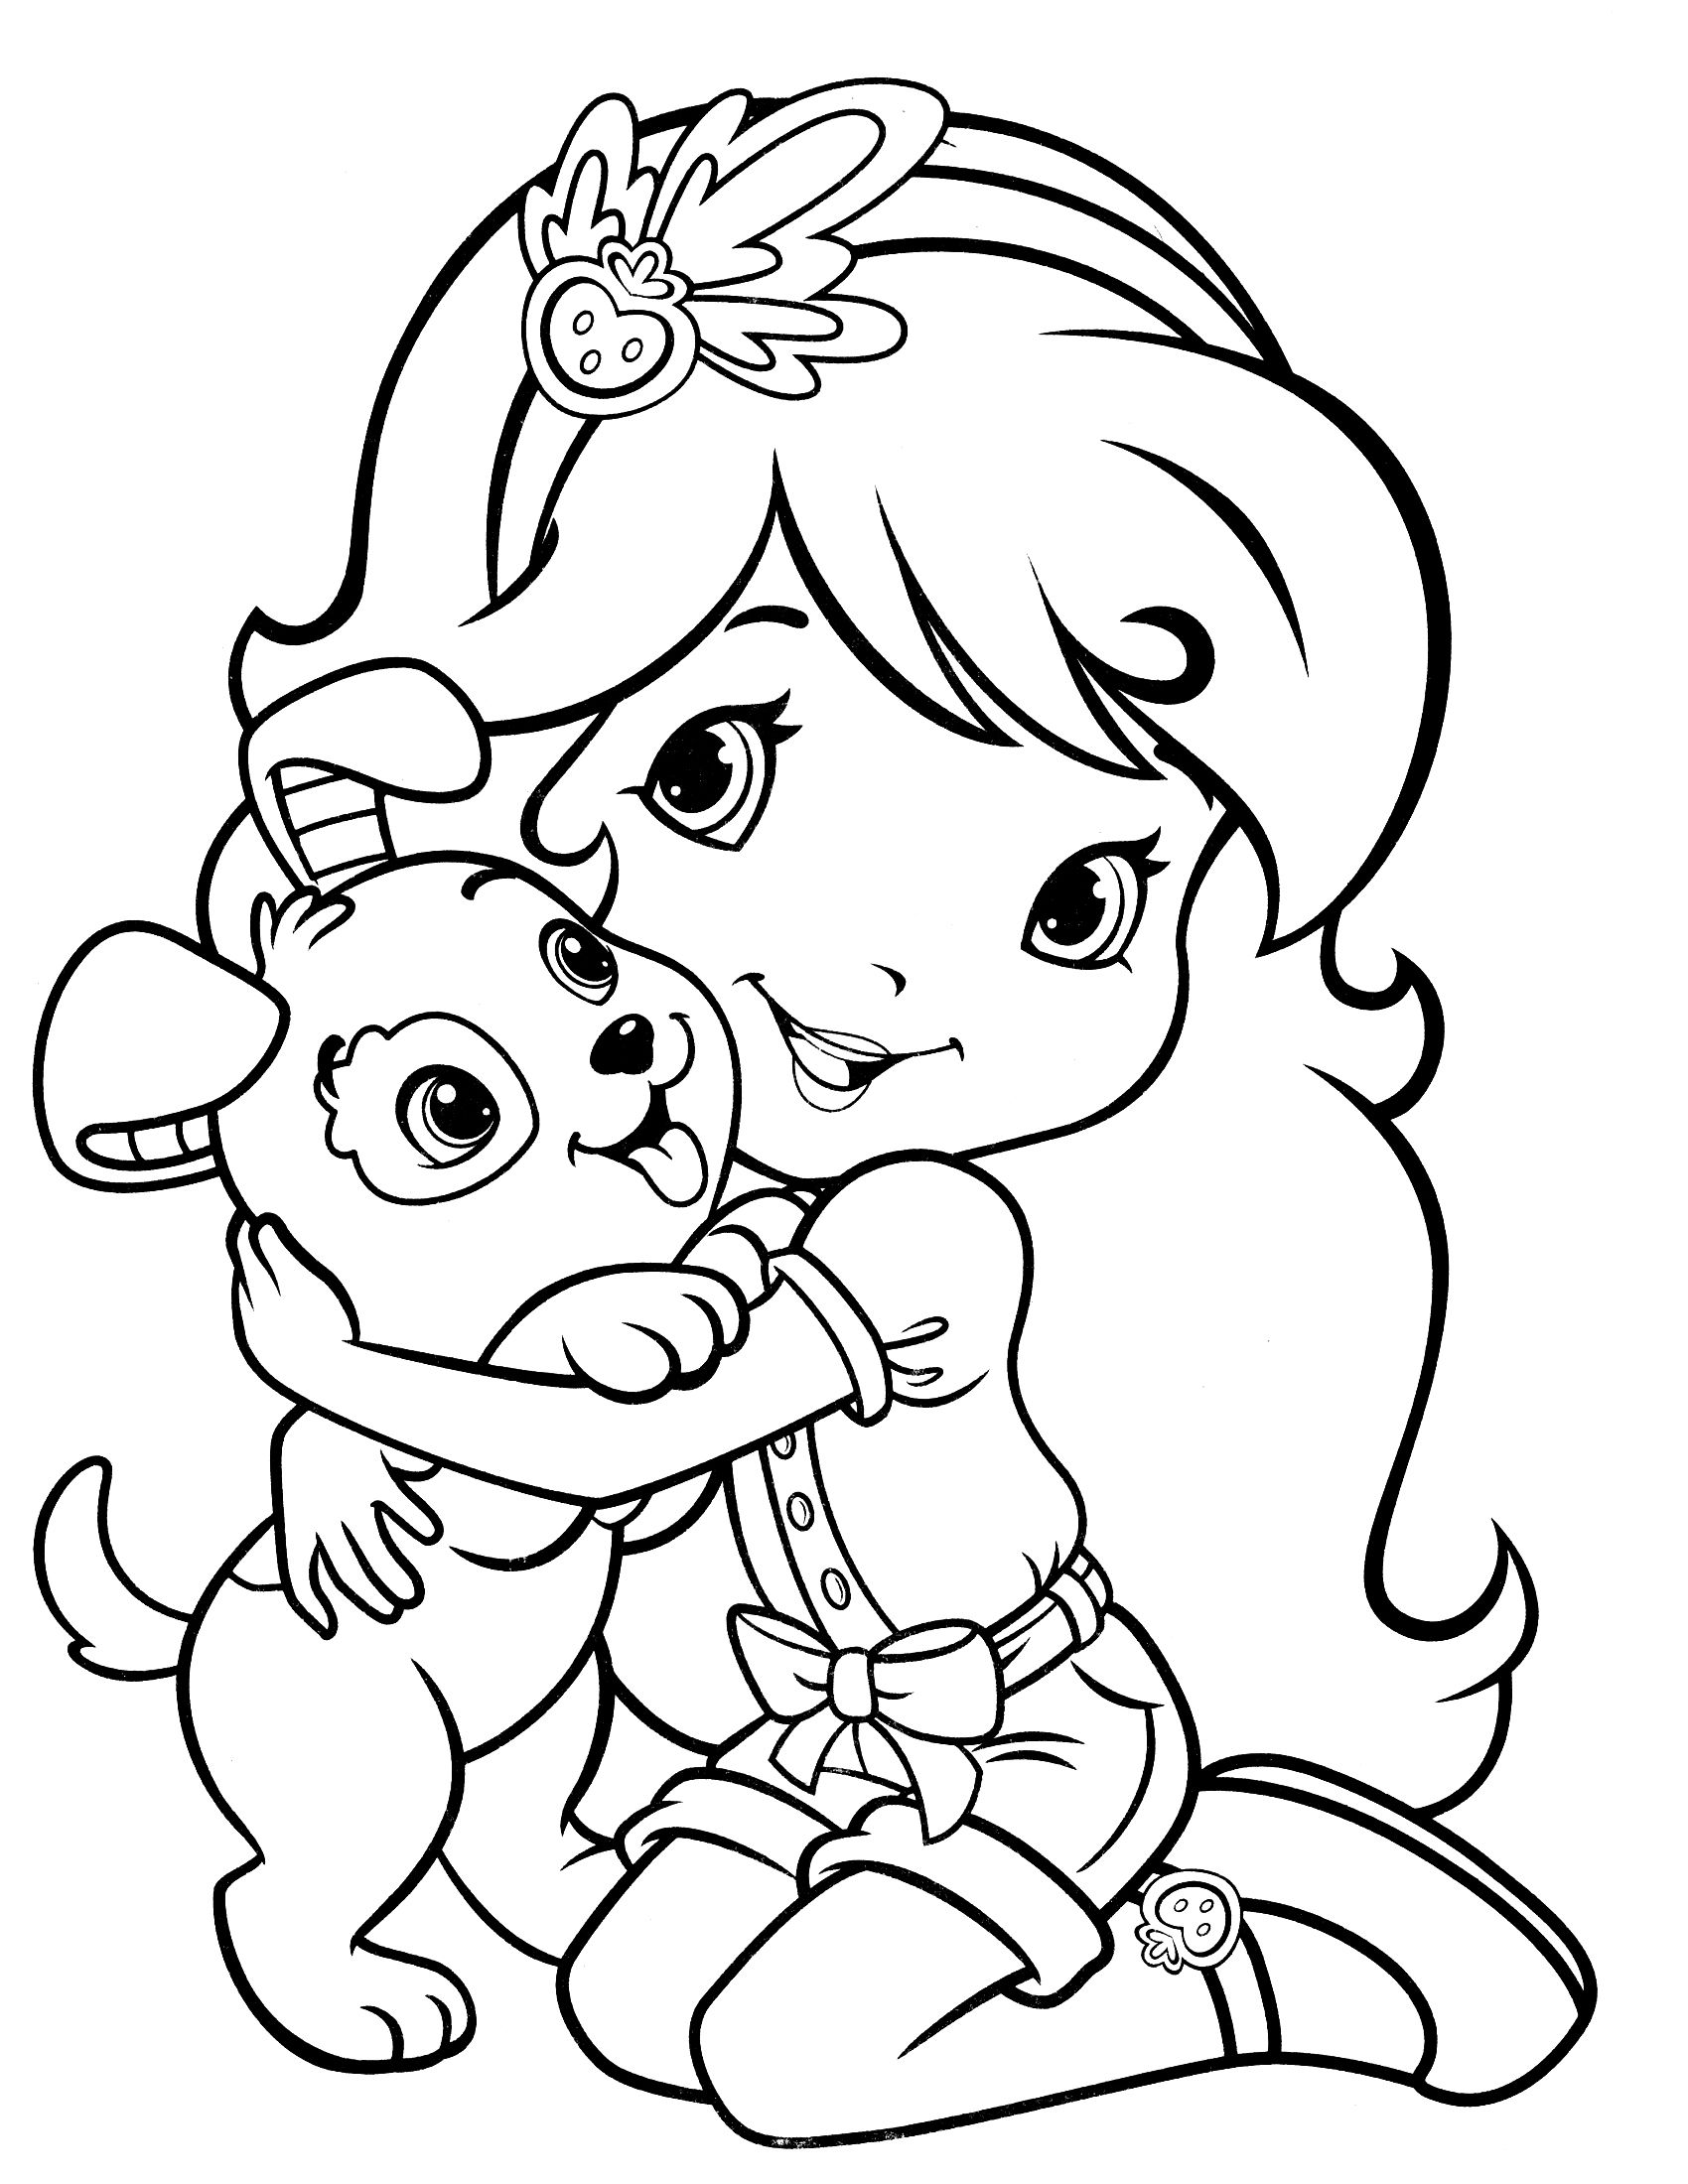 strawberry-shortcake-coloring-page-73.jpg (1700×2200) | FRESITA ...